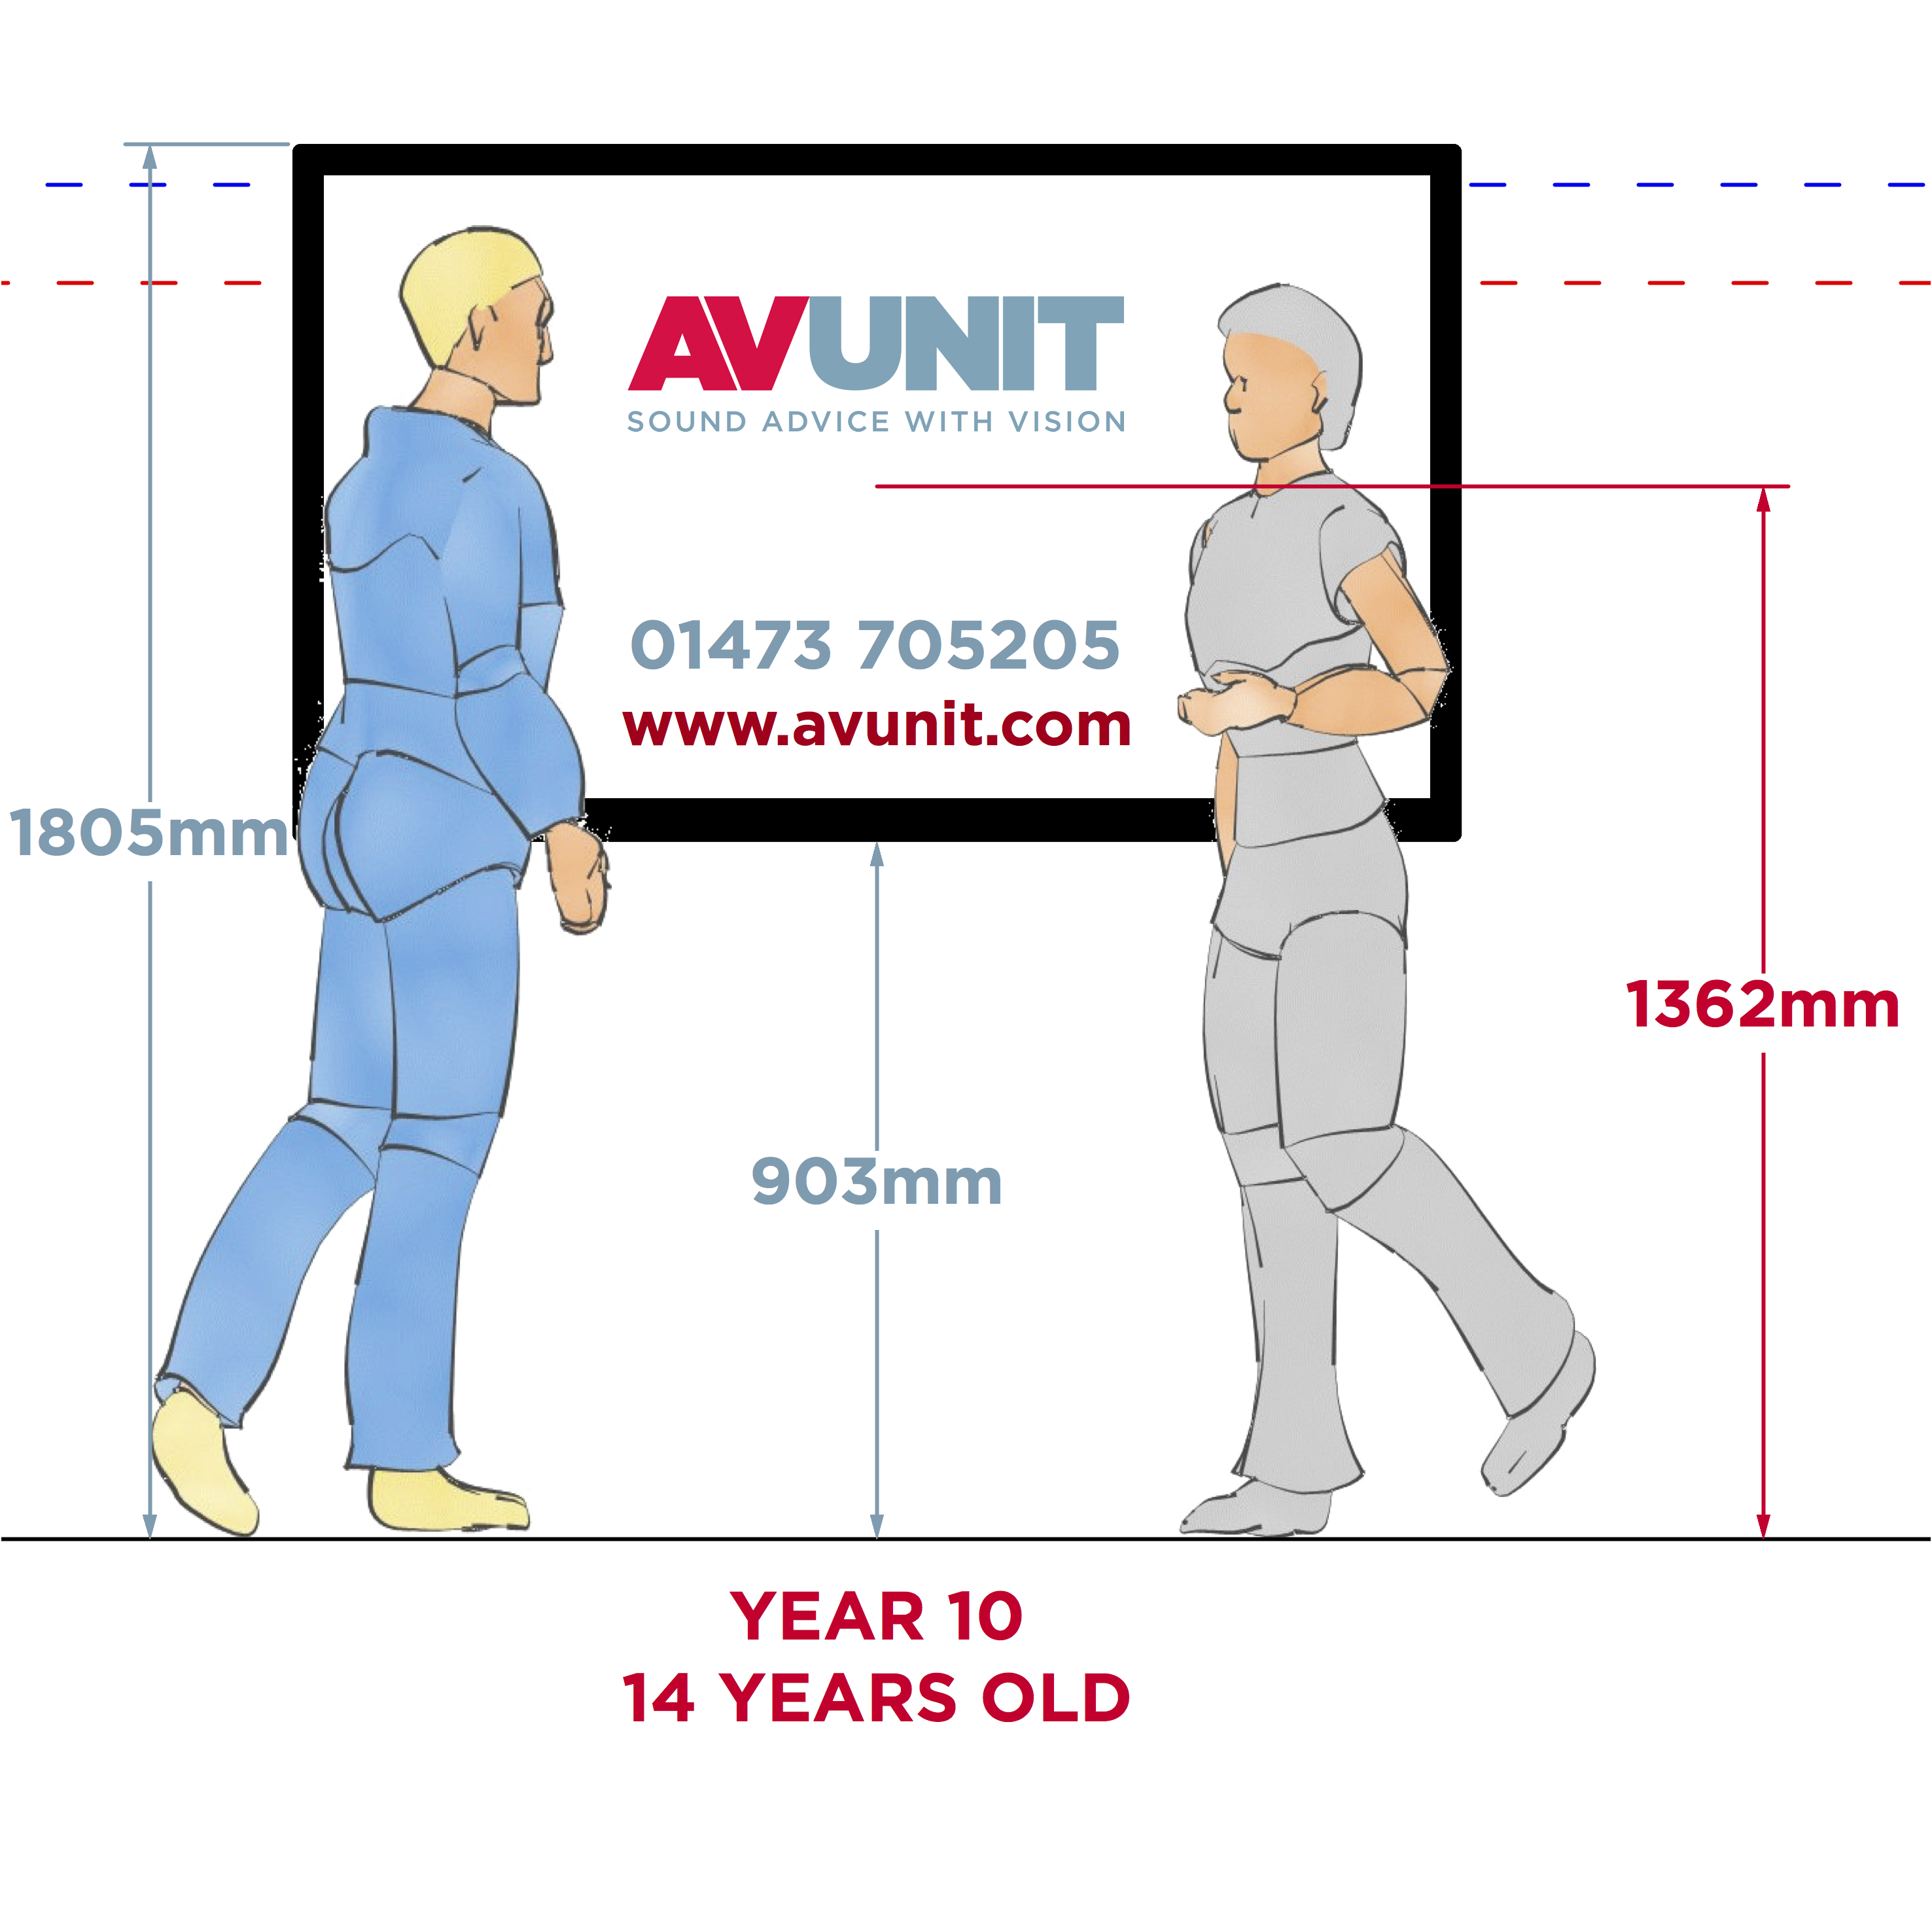 Average Wall Height: What Is The Correct Height For A Classroom Interactive Screen?